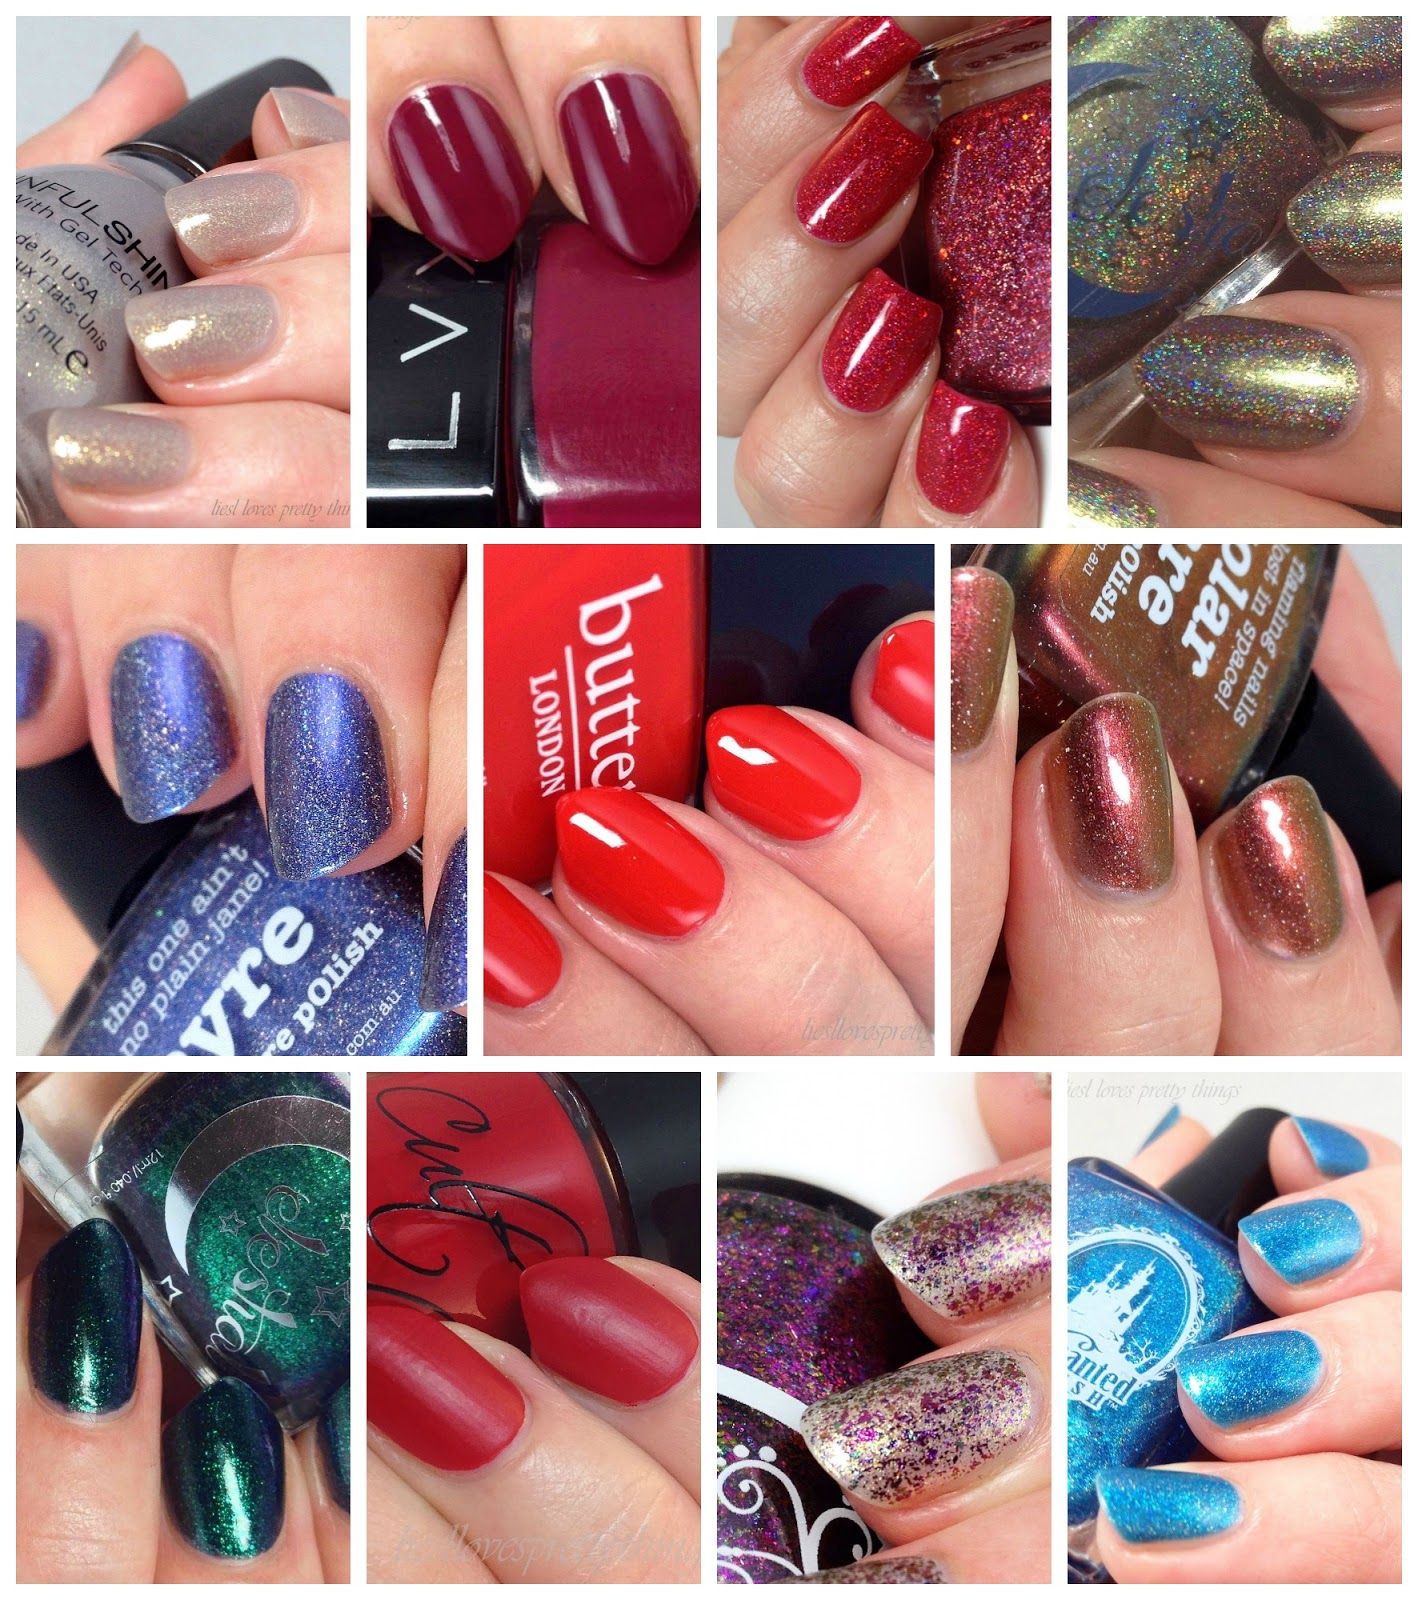 LLPT's Best Nails of 2014